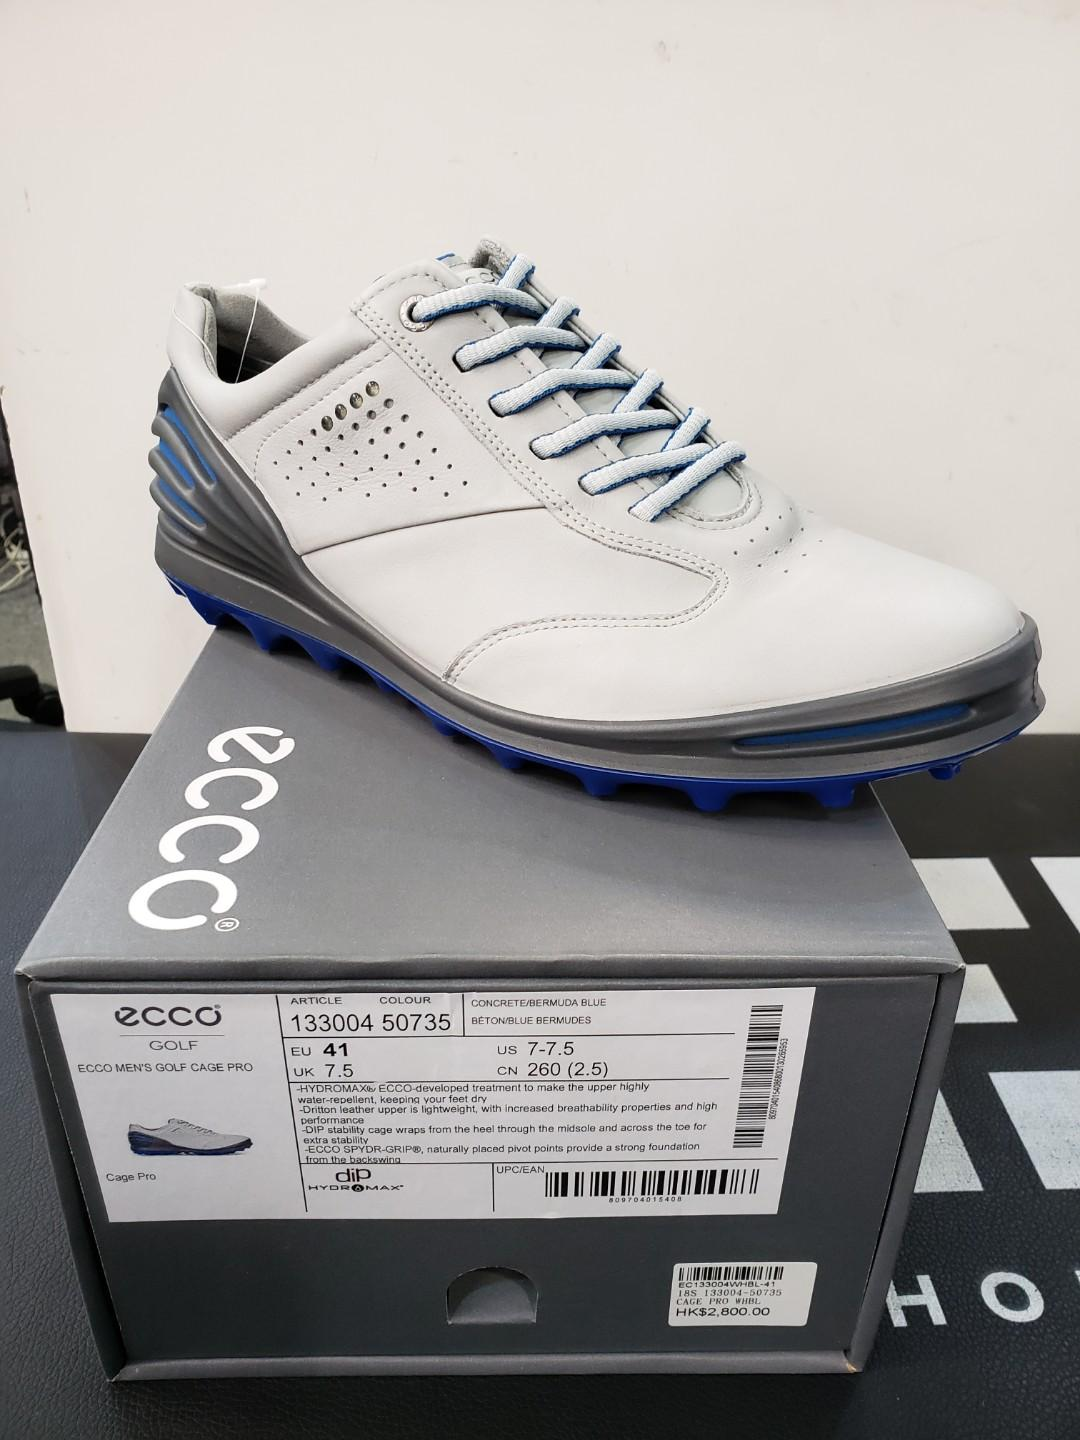 ecco golf shoes hong kong